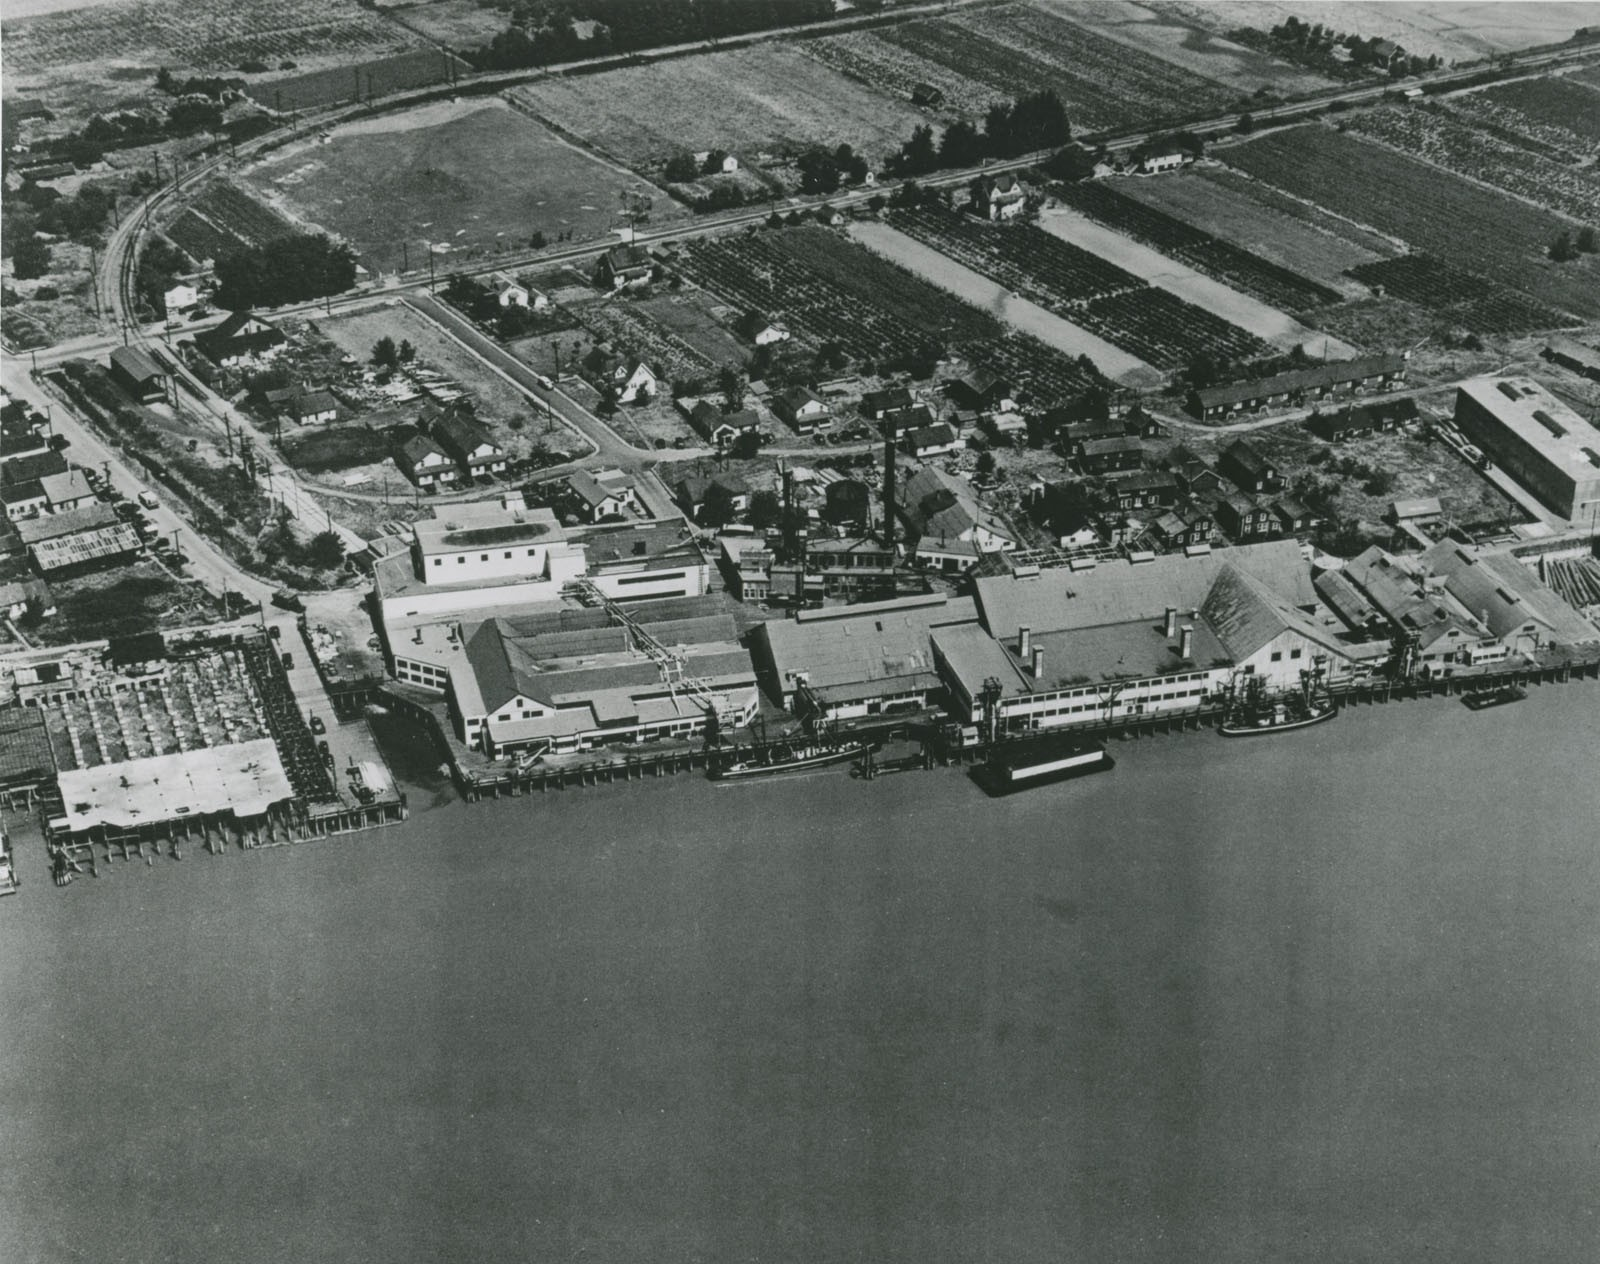 Aerial photo of the Imperial Cannery, Steveston - 1950